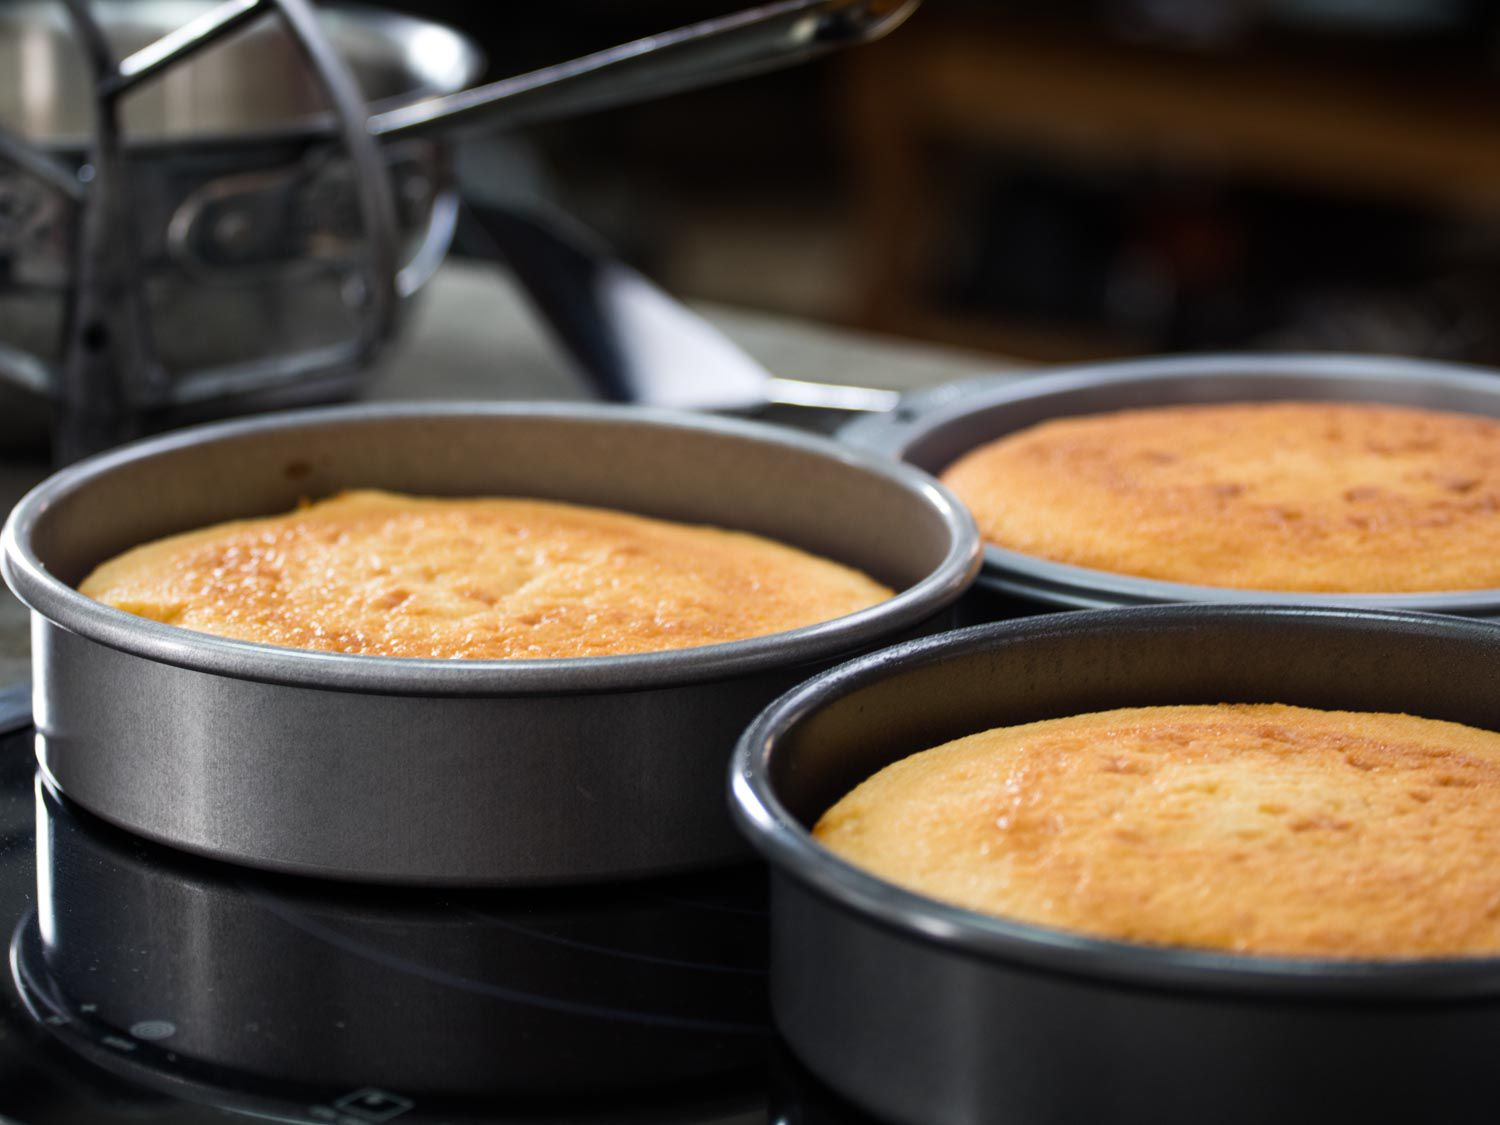 Cake layers in cake pans